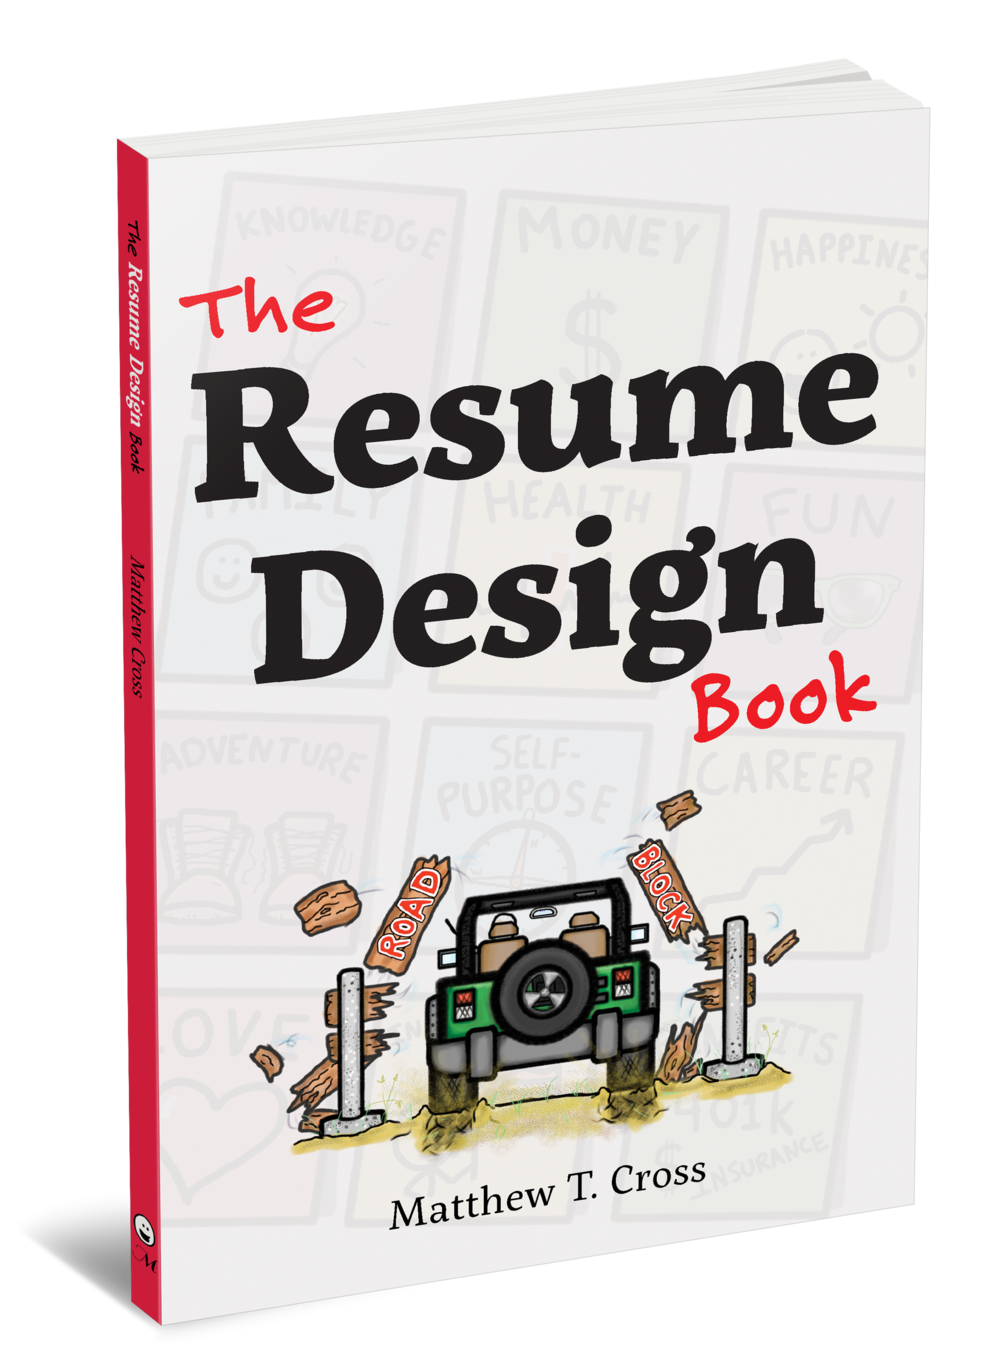 the resume design book by matthew t cross amazon giveaway blog post.jpg